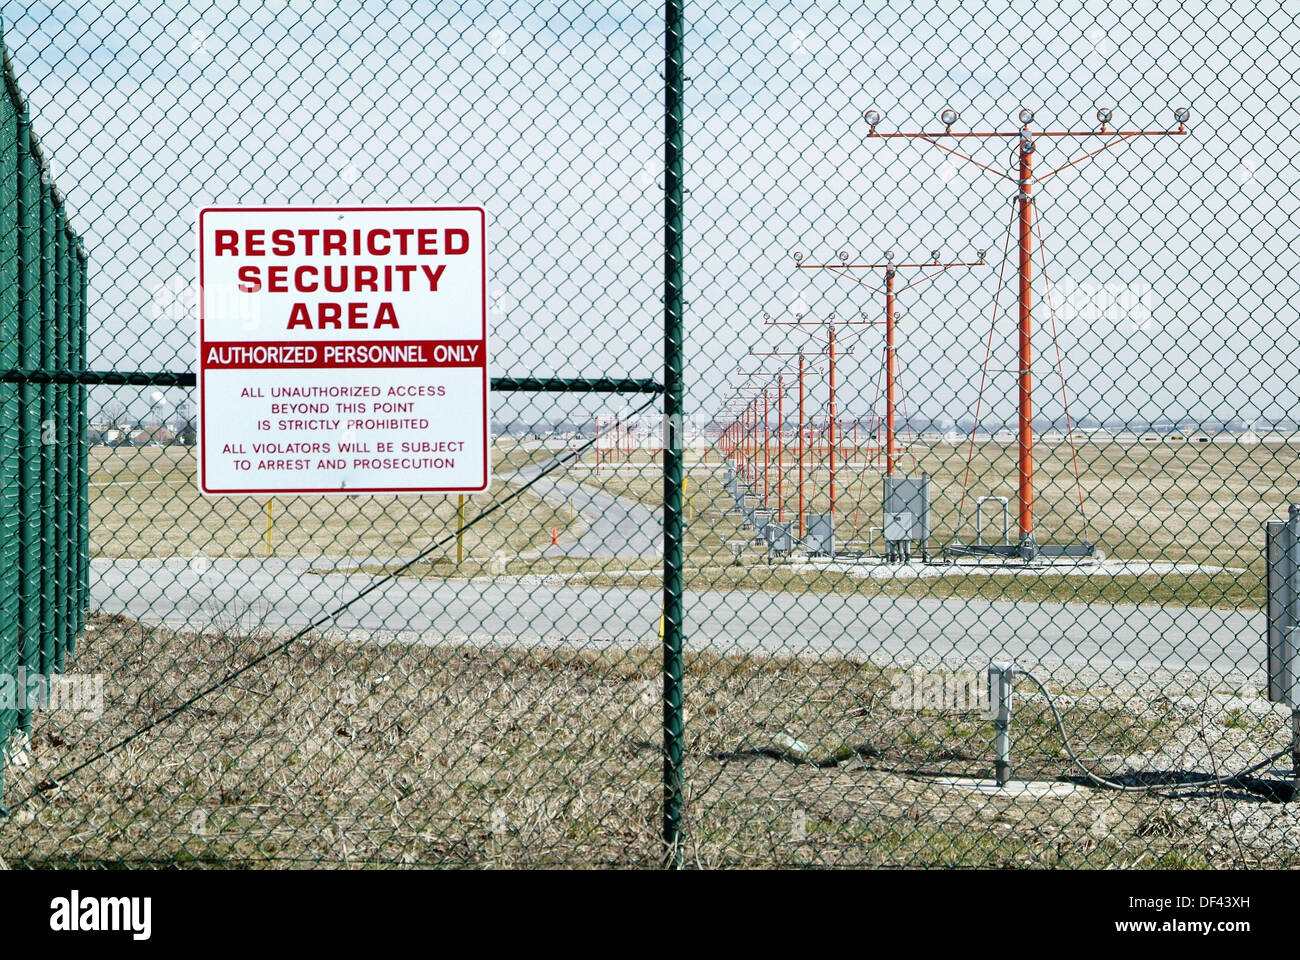 Cleveland Ohio Hopkins airport restricted security area and authorized personal only warning sign - Stock Image